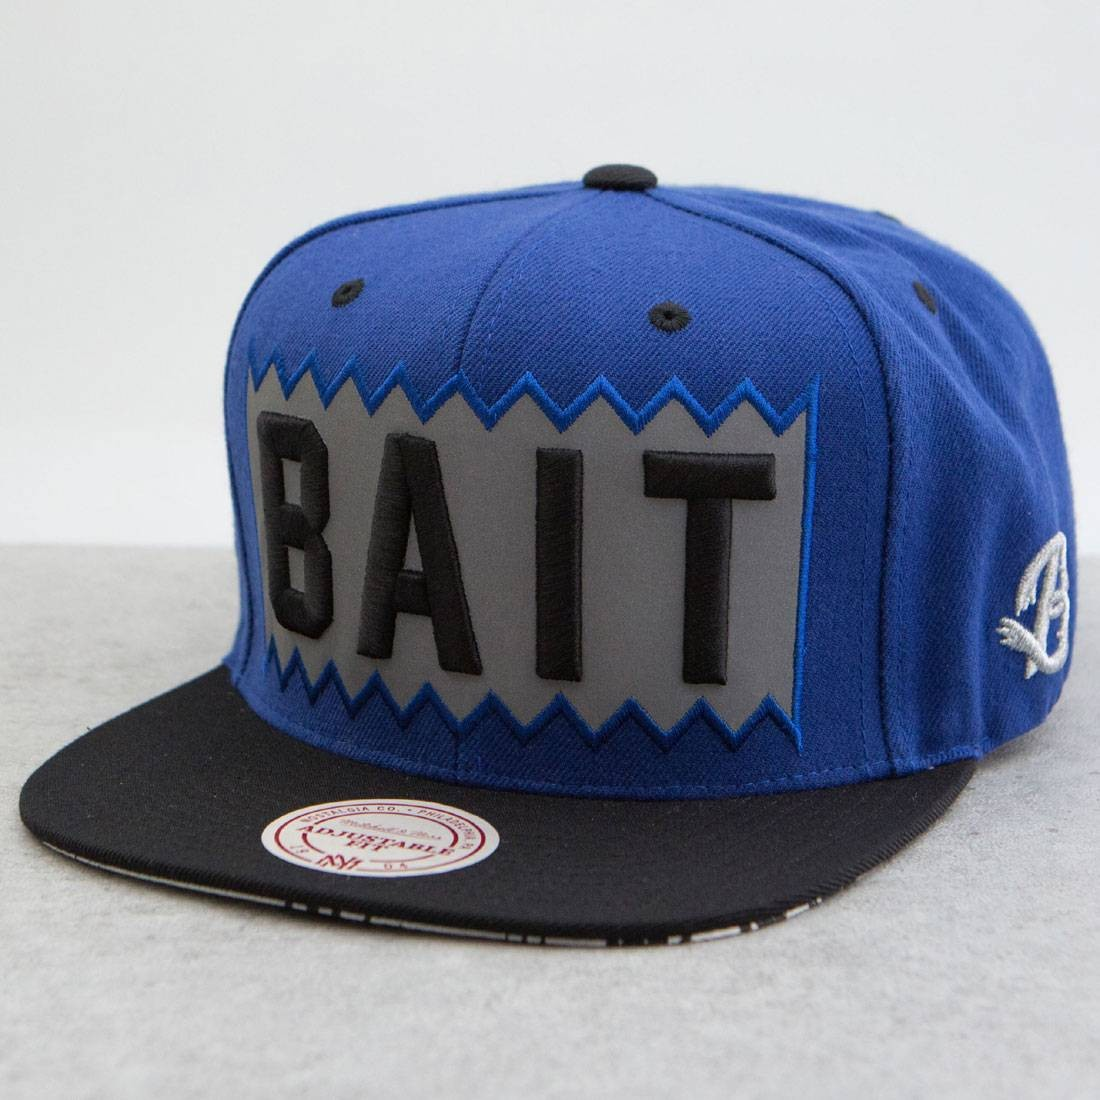 BAIT x Mitchell And Ness Box Logo Snapback Cap - 3M (royal / black)